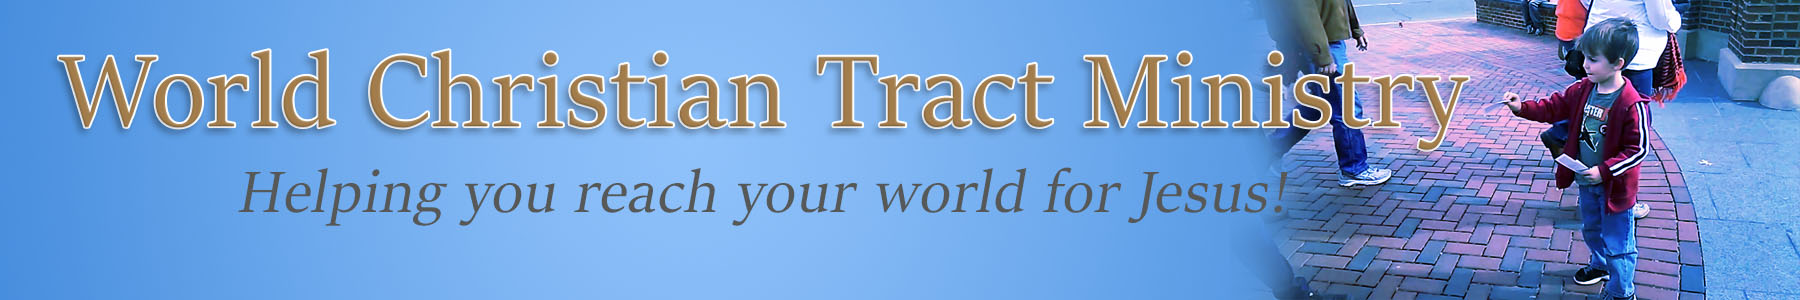 World Christian Tract Minstry - Helping you reach your world for Jesus